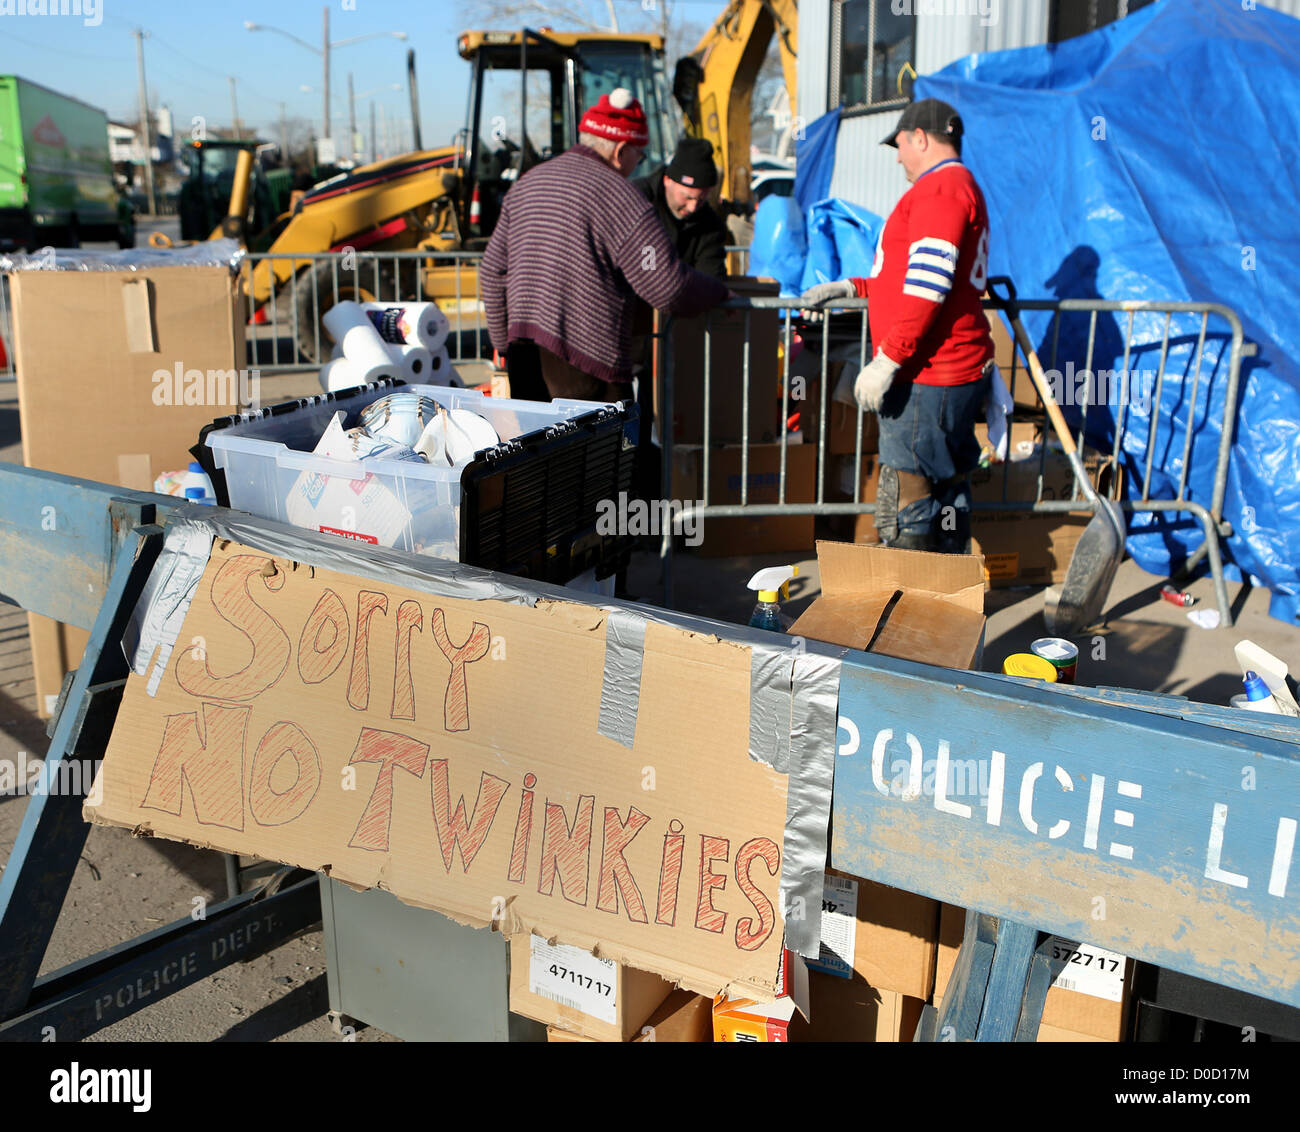 Volunteers hand out cleaning supplies to clean up after Tropical Storm Sandy damaged Breezy Point, NY, November - Stock Image